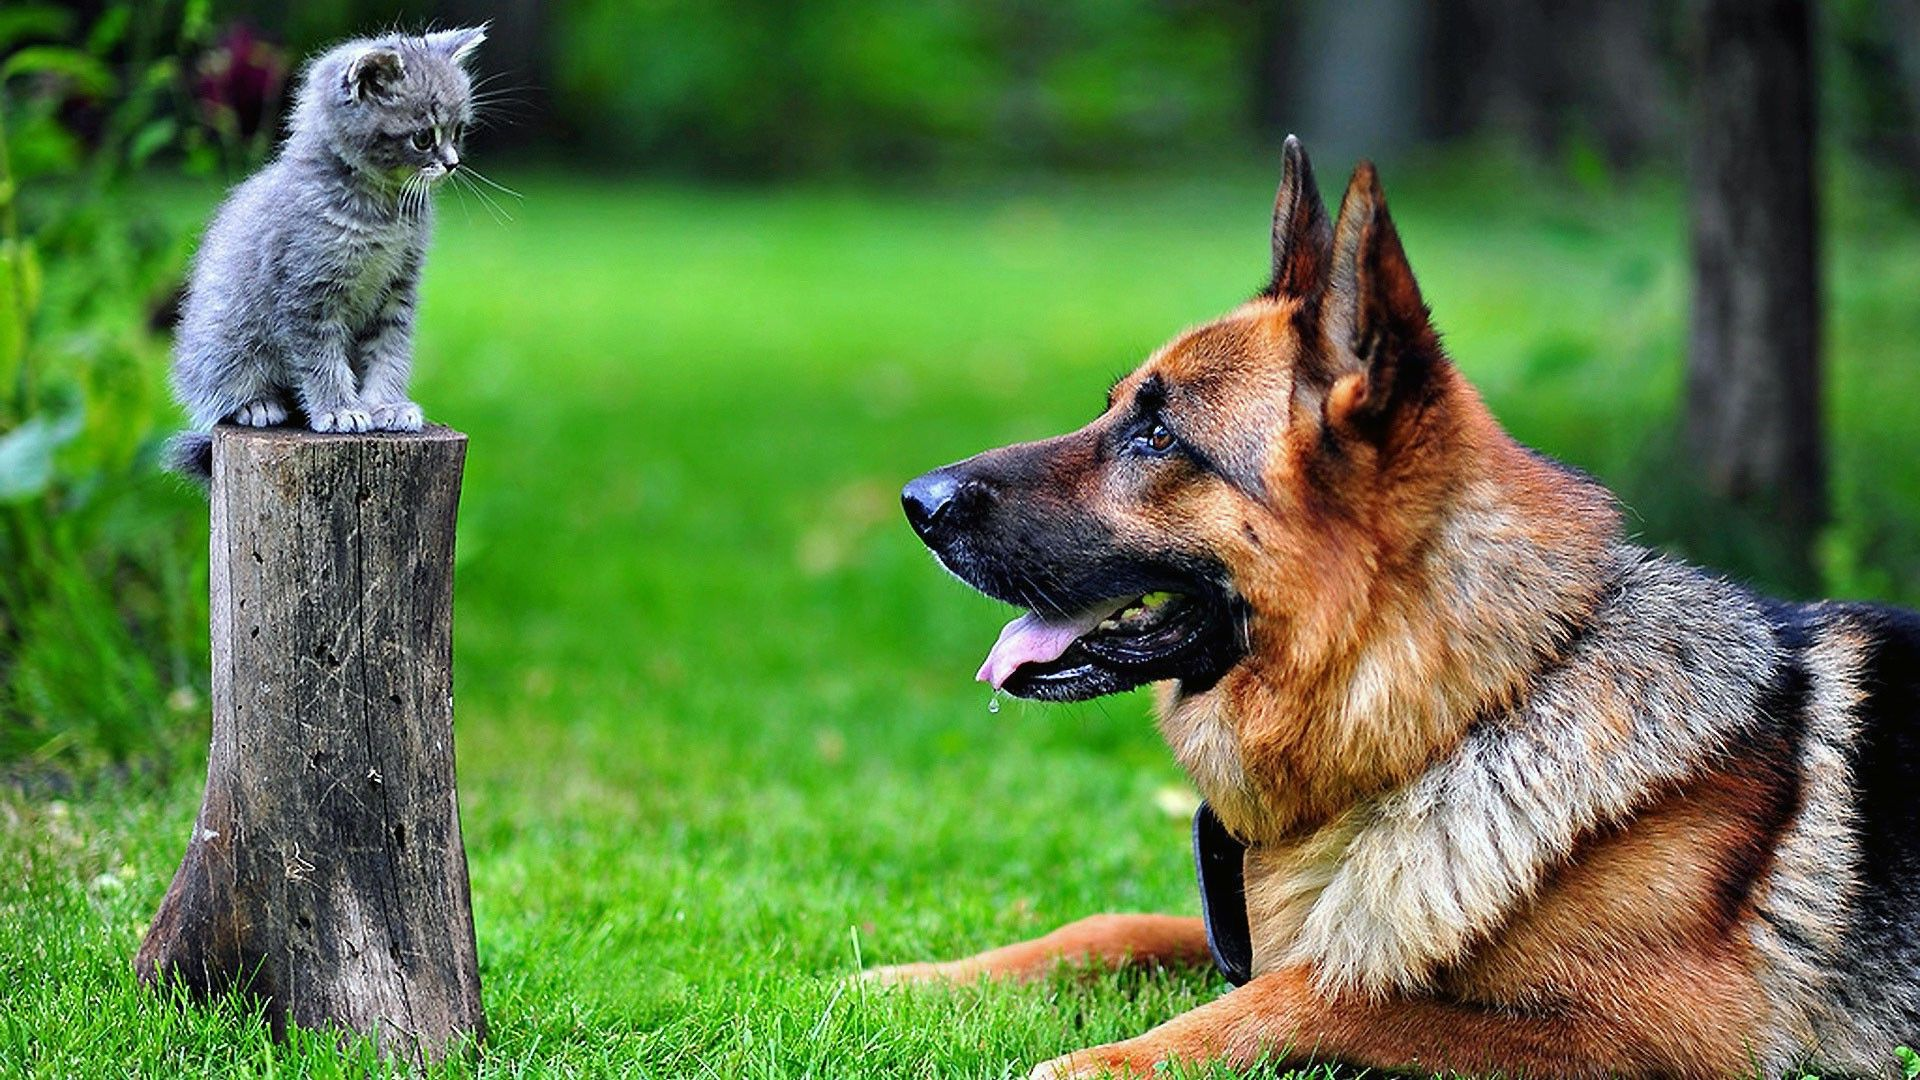 Cute German Shepherd And Friends Cute Kittens Images Dog Cat Pictures Cute Cats